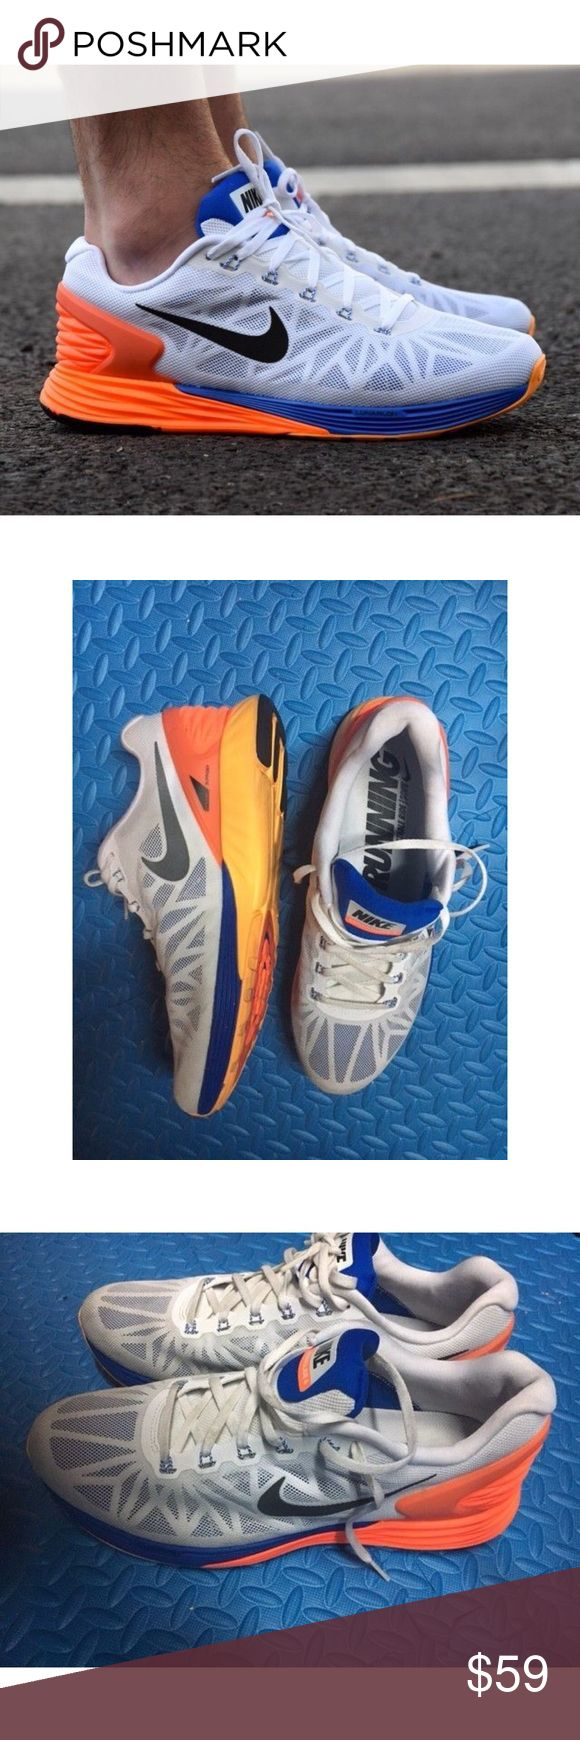 NIKE LUNARGLIDE 6 Mens Athletic Orange Blue Shoes Nike Lunarglide 6 mens running shoes. size 11.5 Color: white, orange, and blue. Preowned. Worn a 3-4 times . Sold as is. No box. Nike Shoes Sneakers